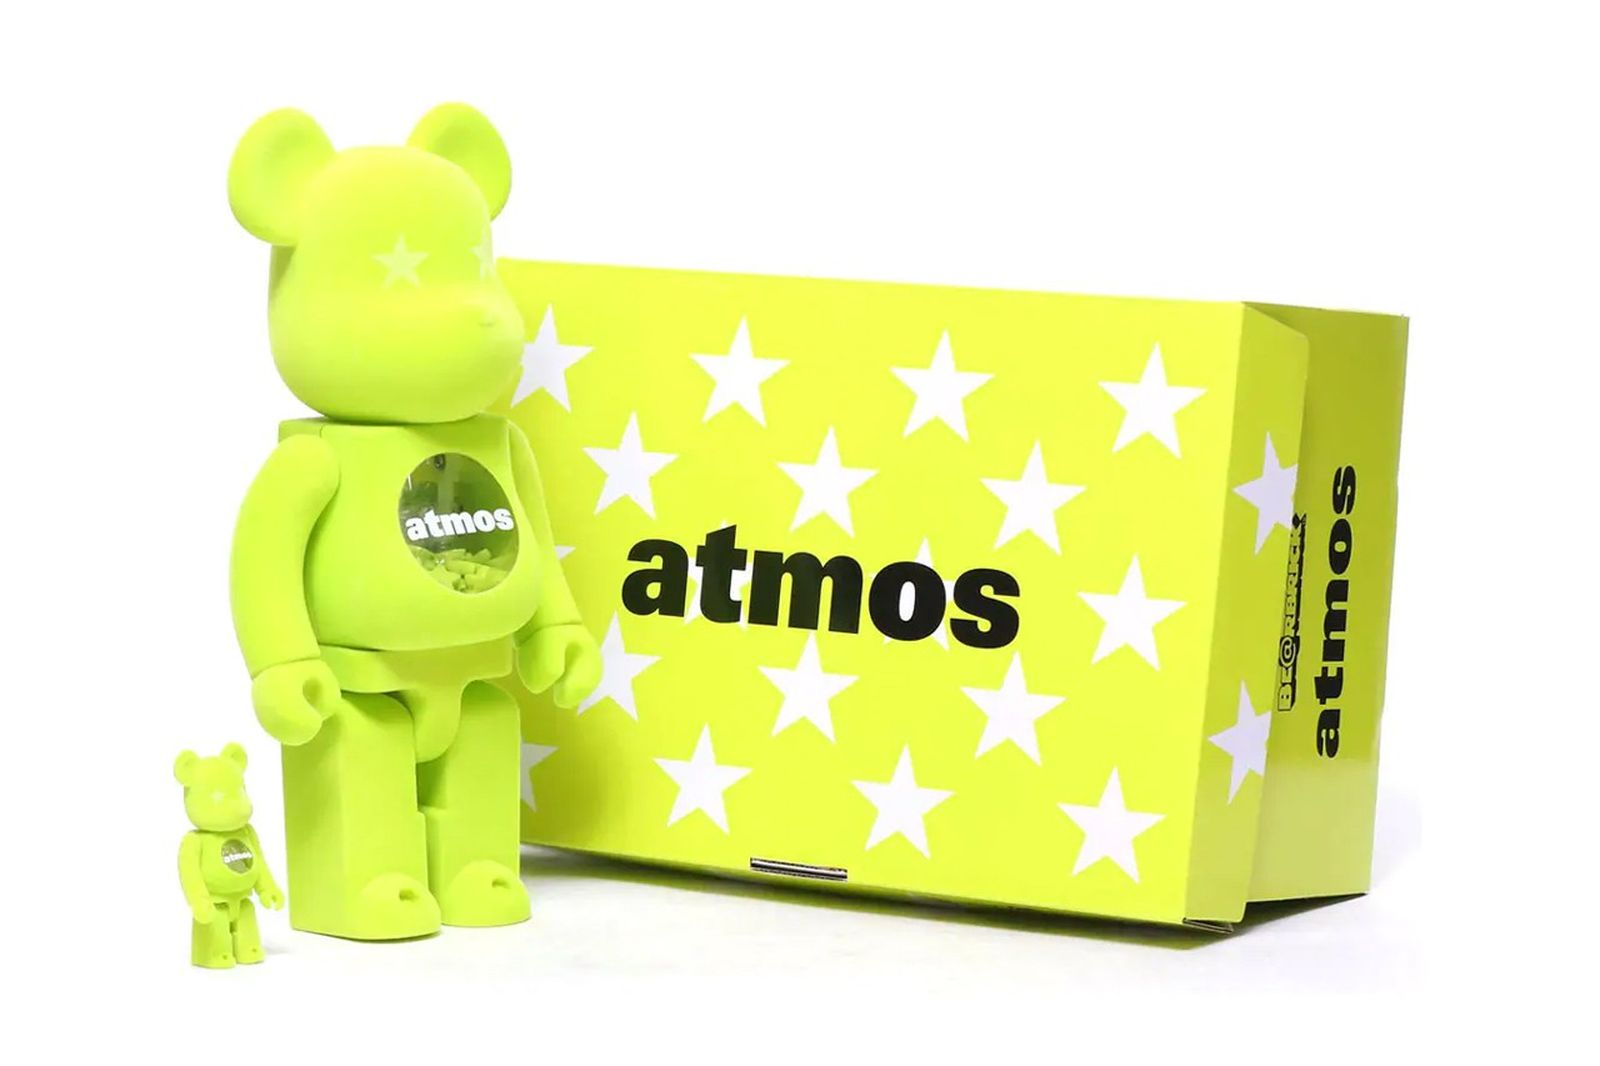 Images of the new collaboration between atmos and Lacsote